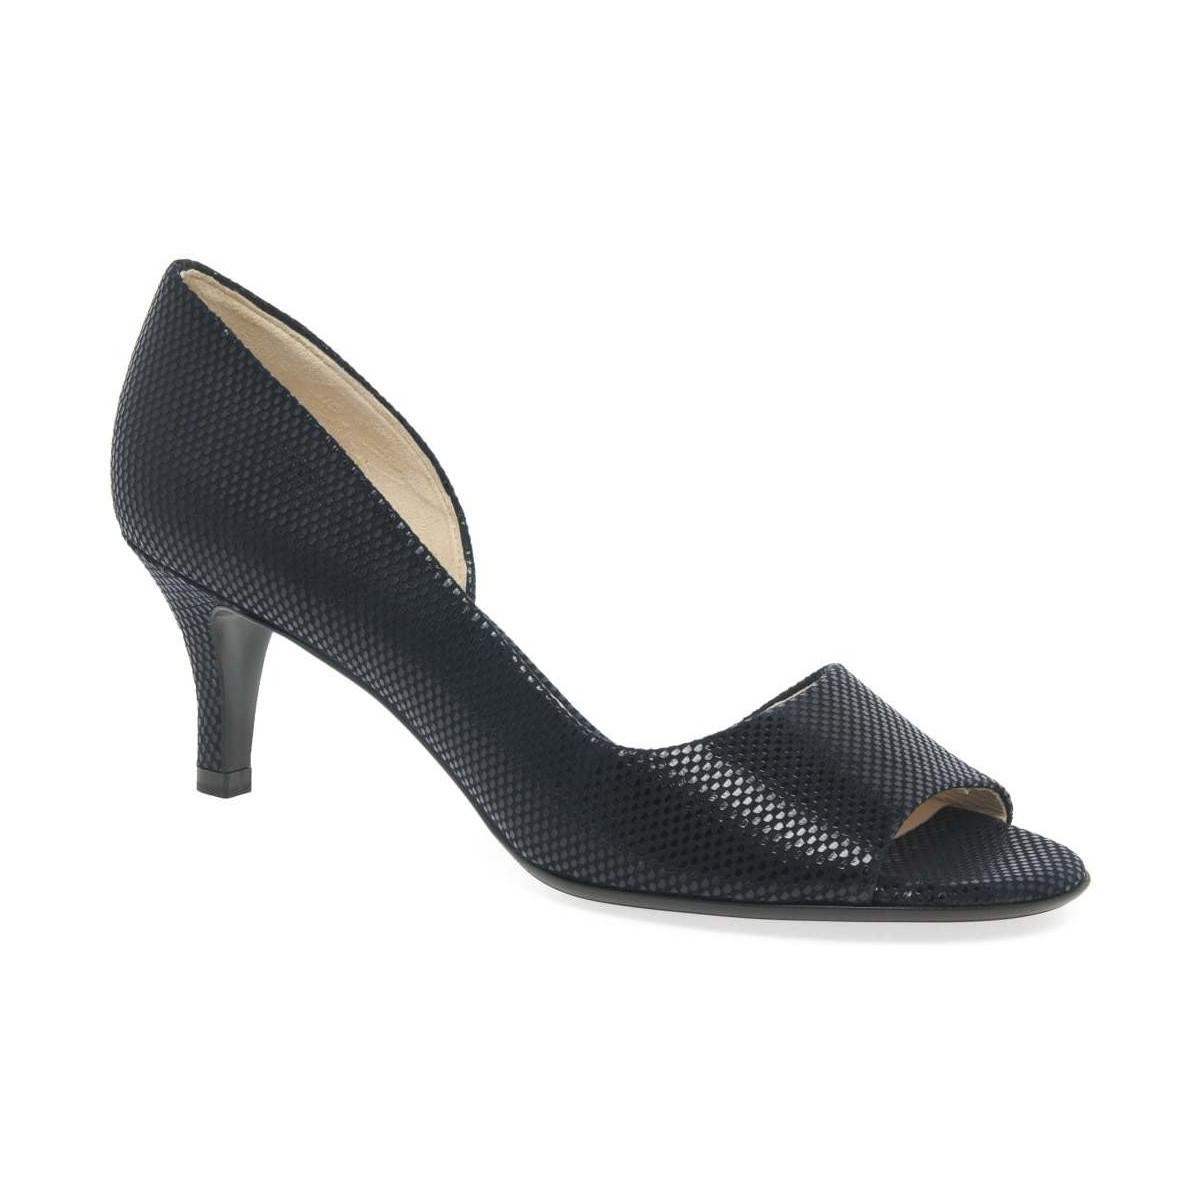 Black 'jamala ii' womens open toe court shoes cheap for nice the cheapest cheap online excellent sale online hAmfexbHw